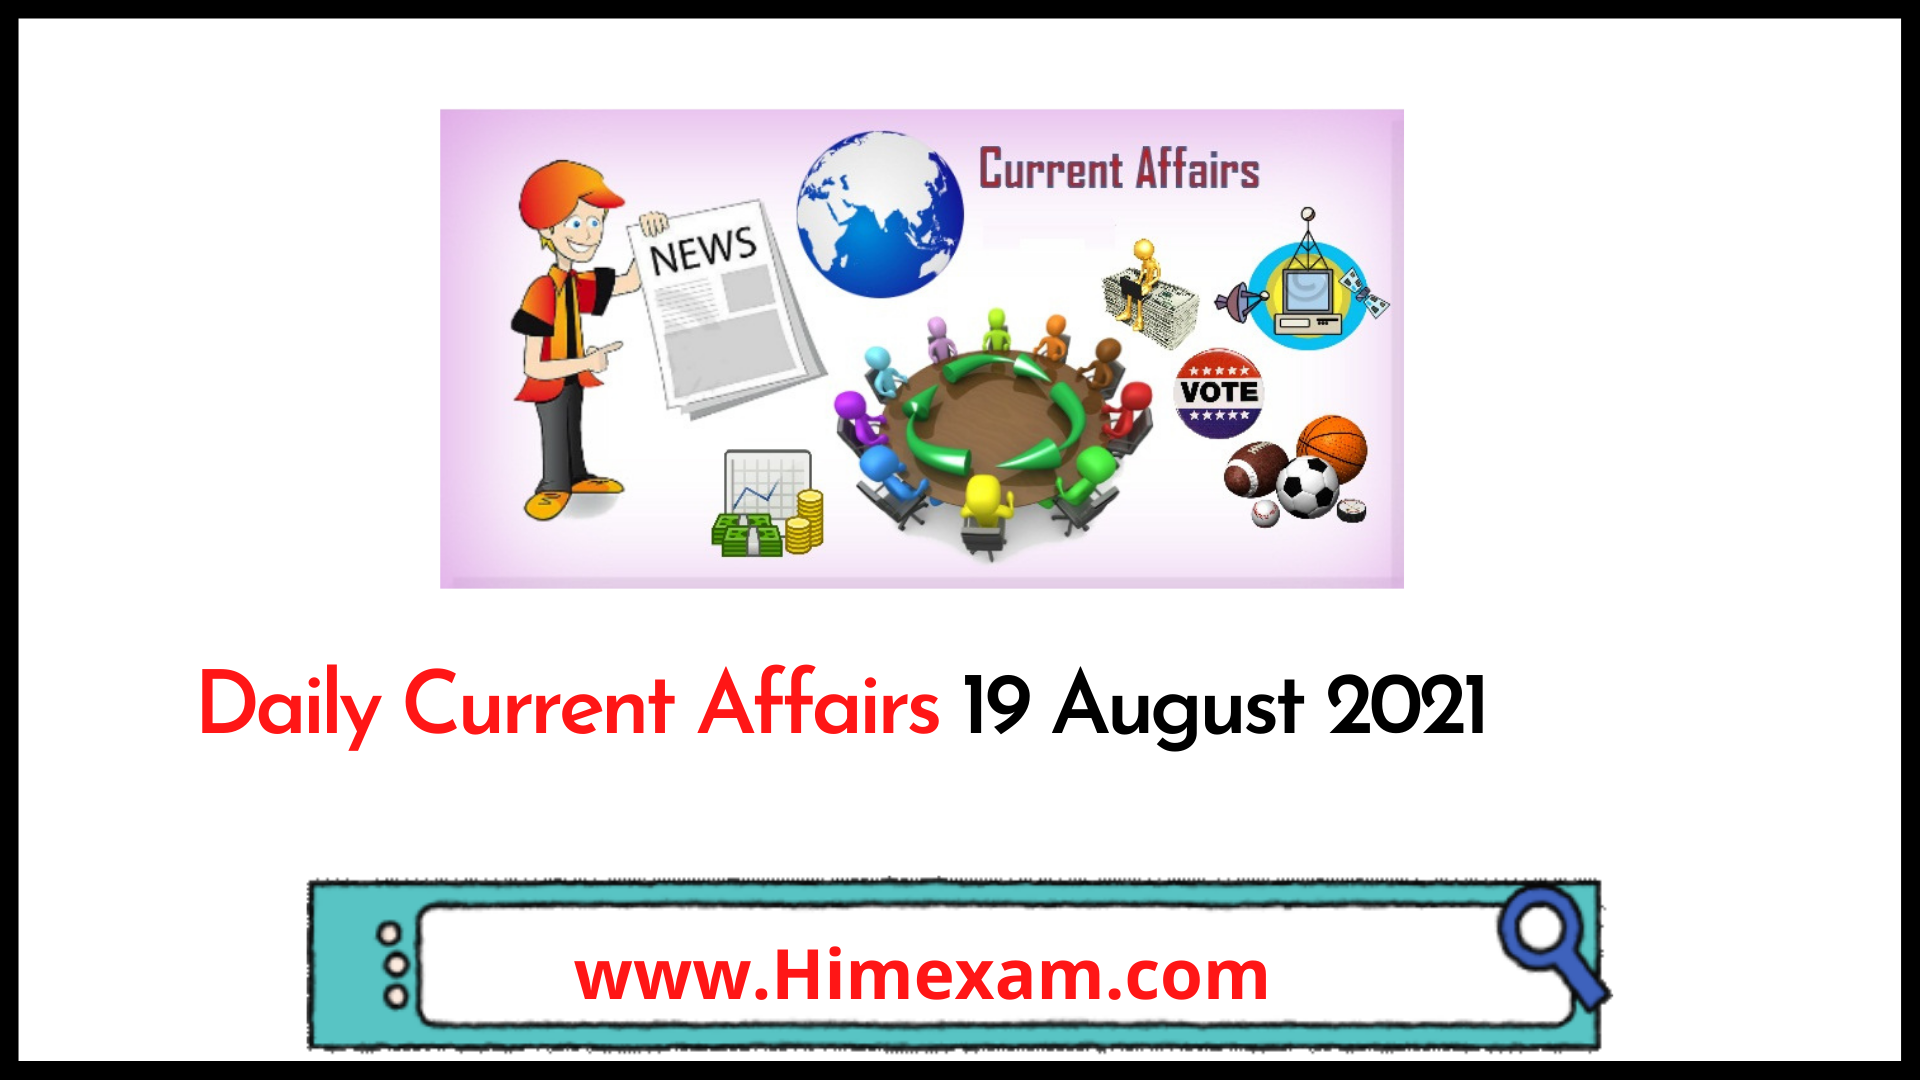 Daily current affairs 19 August 2021